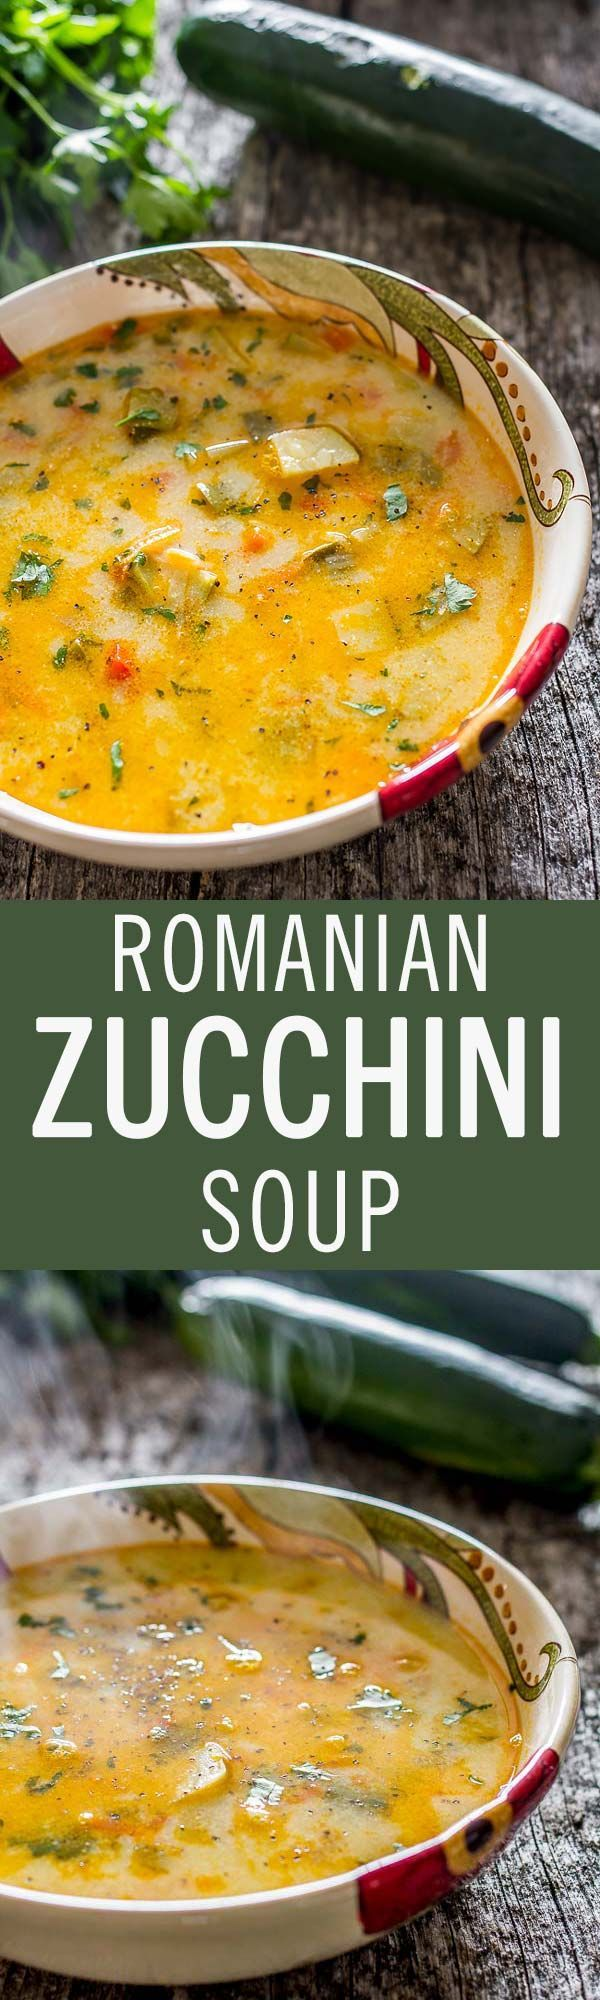 This delicious vegetable sour soup recipe of Romanian origin, sporting zucchini as a star ingredient, can be easily transformed into a vegetarian or vegan dish.